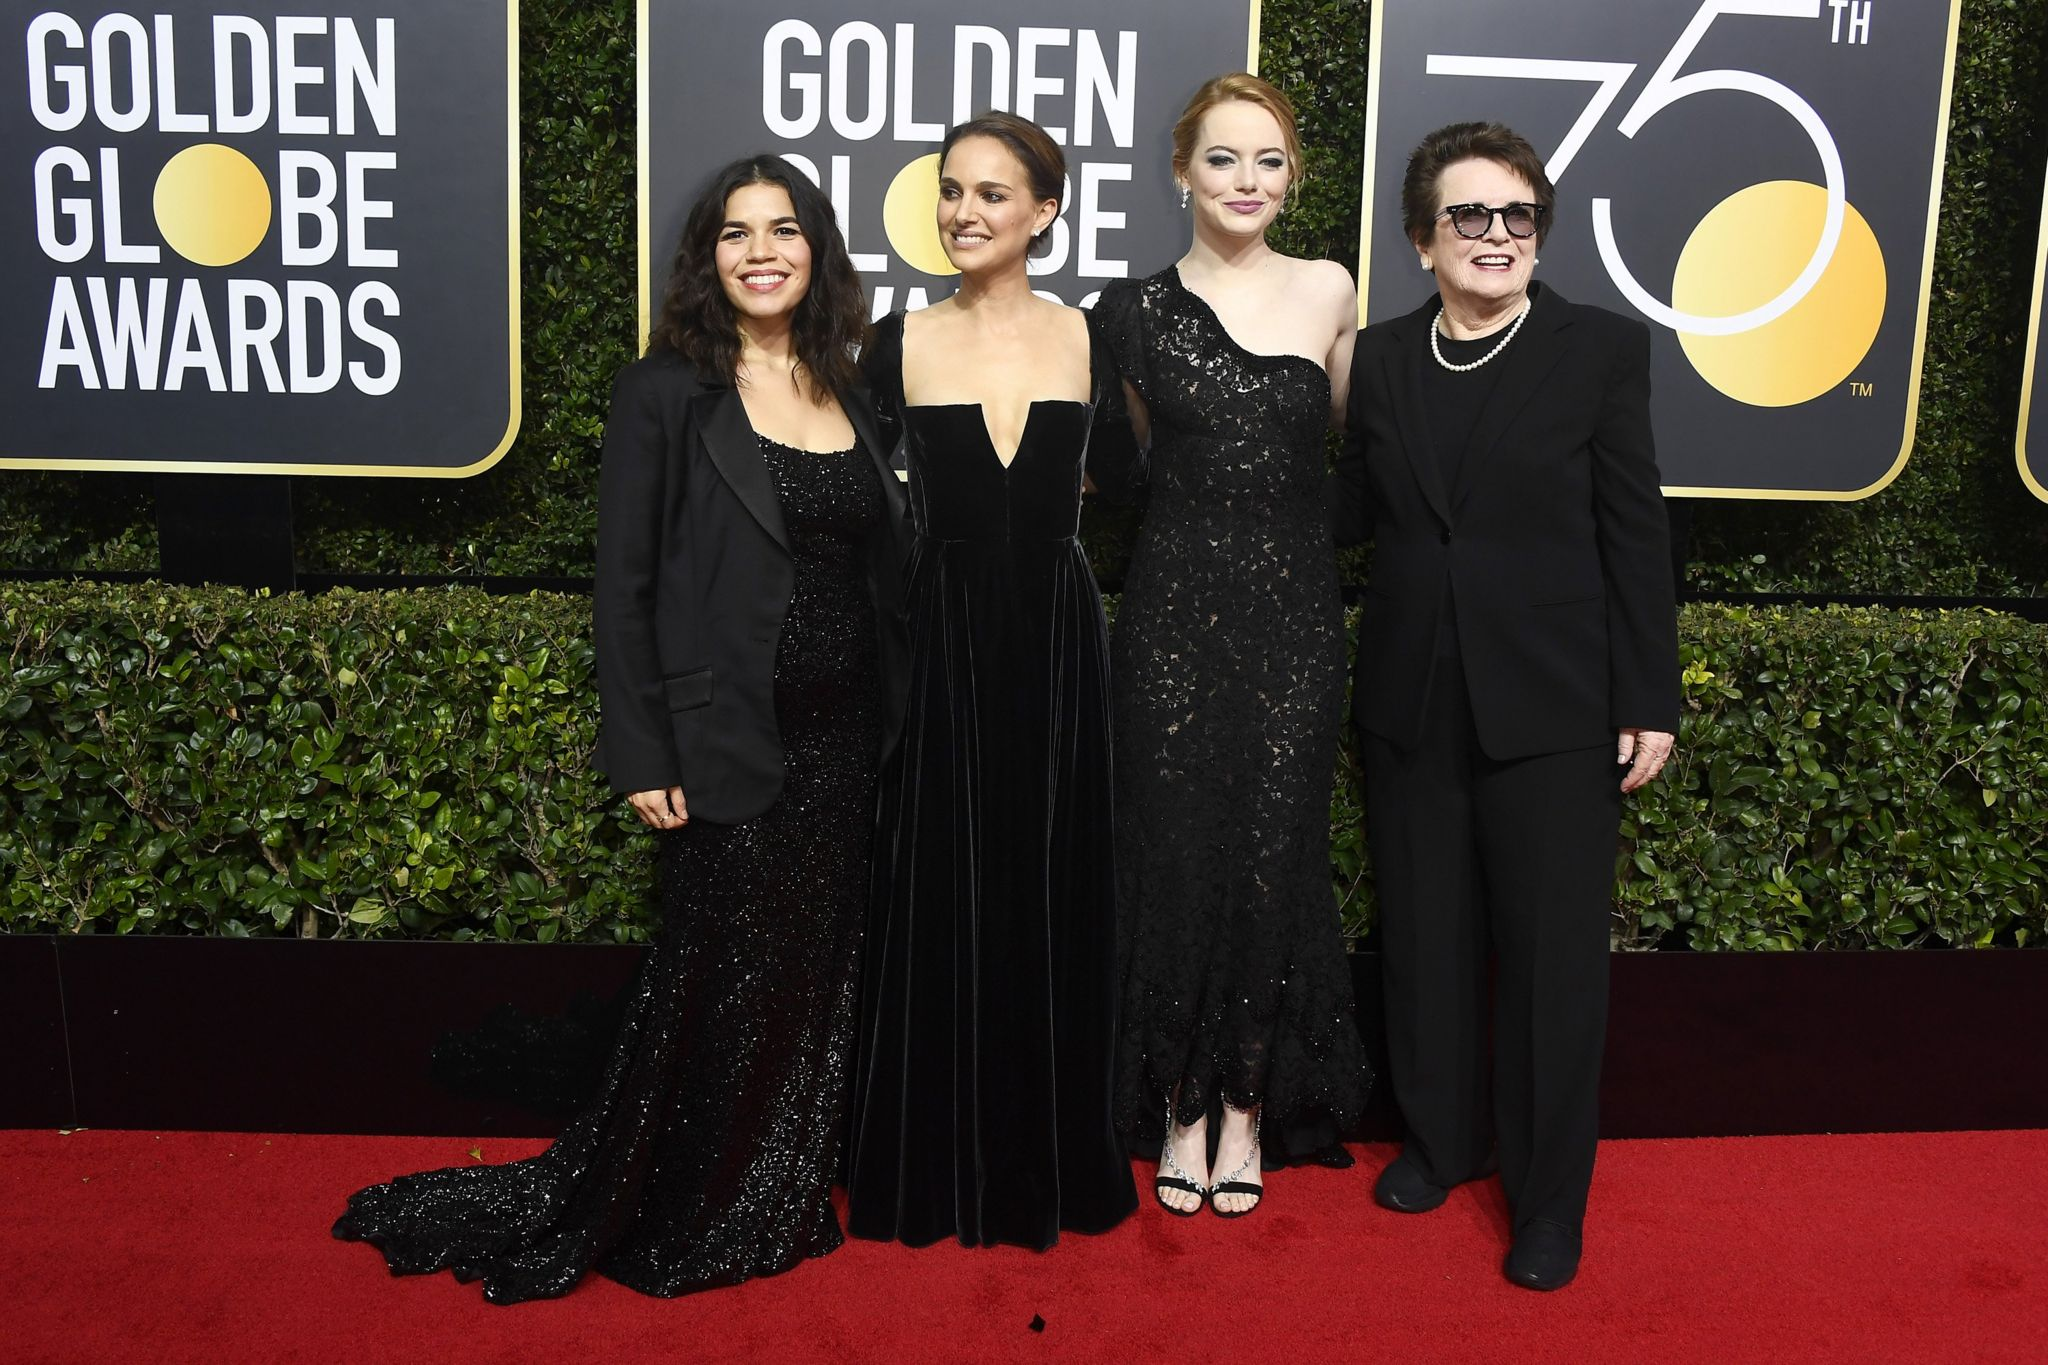 Stars wearing back on the red carpet at the 75th Golden Globe Awards